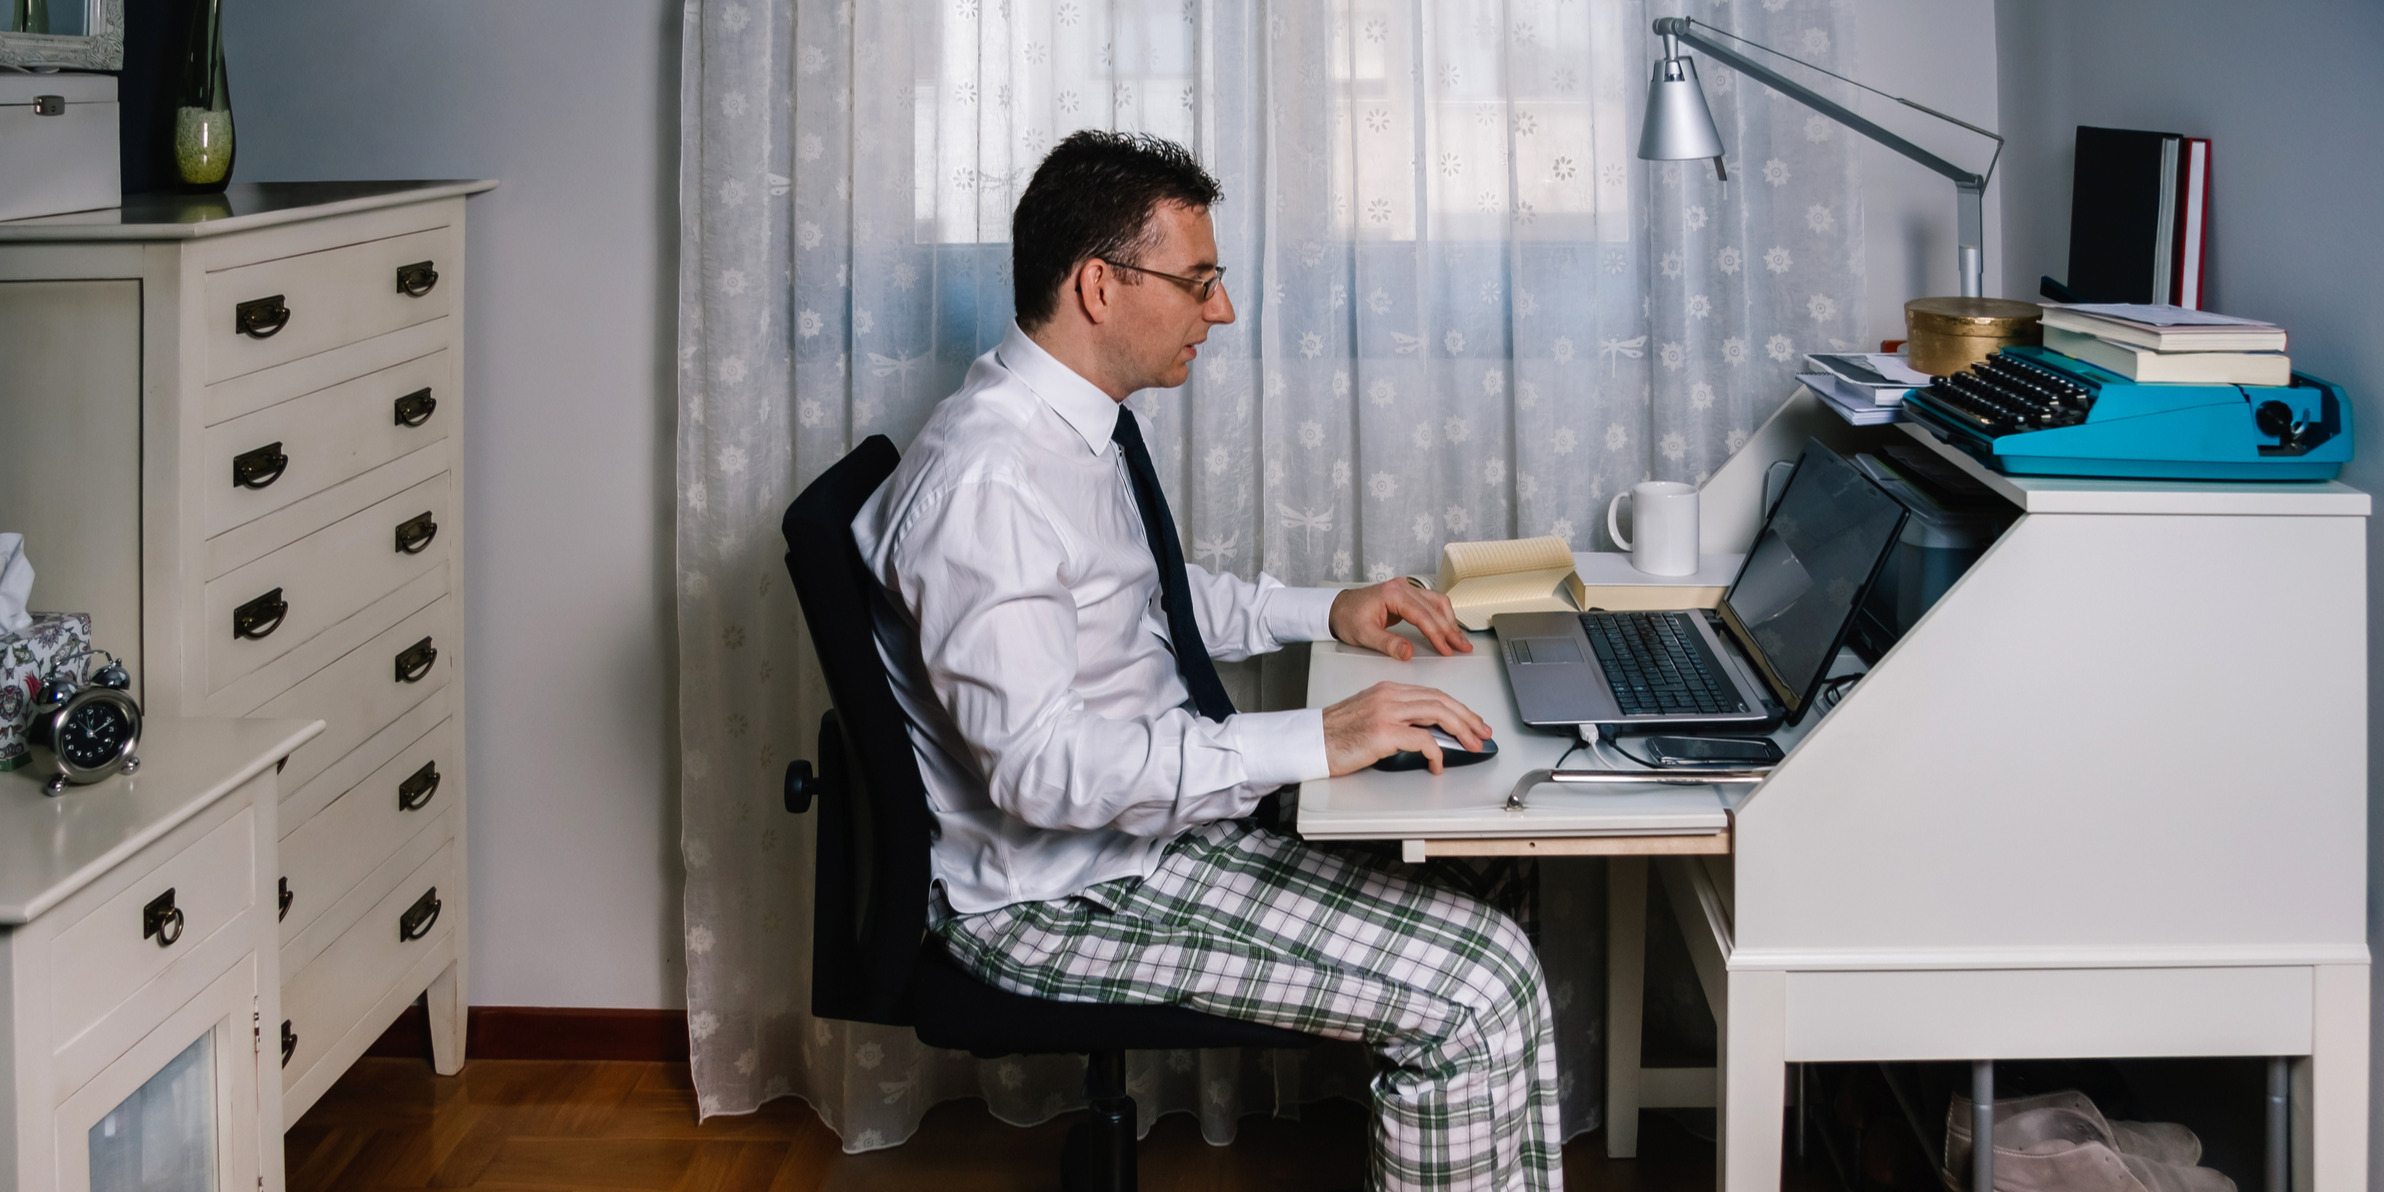 10 GIFs That Sum Up Working From Home in Sales